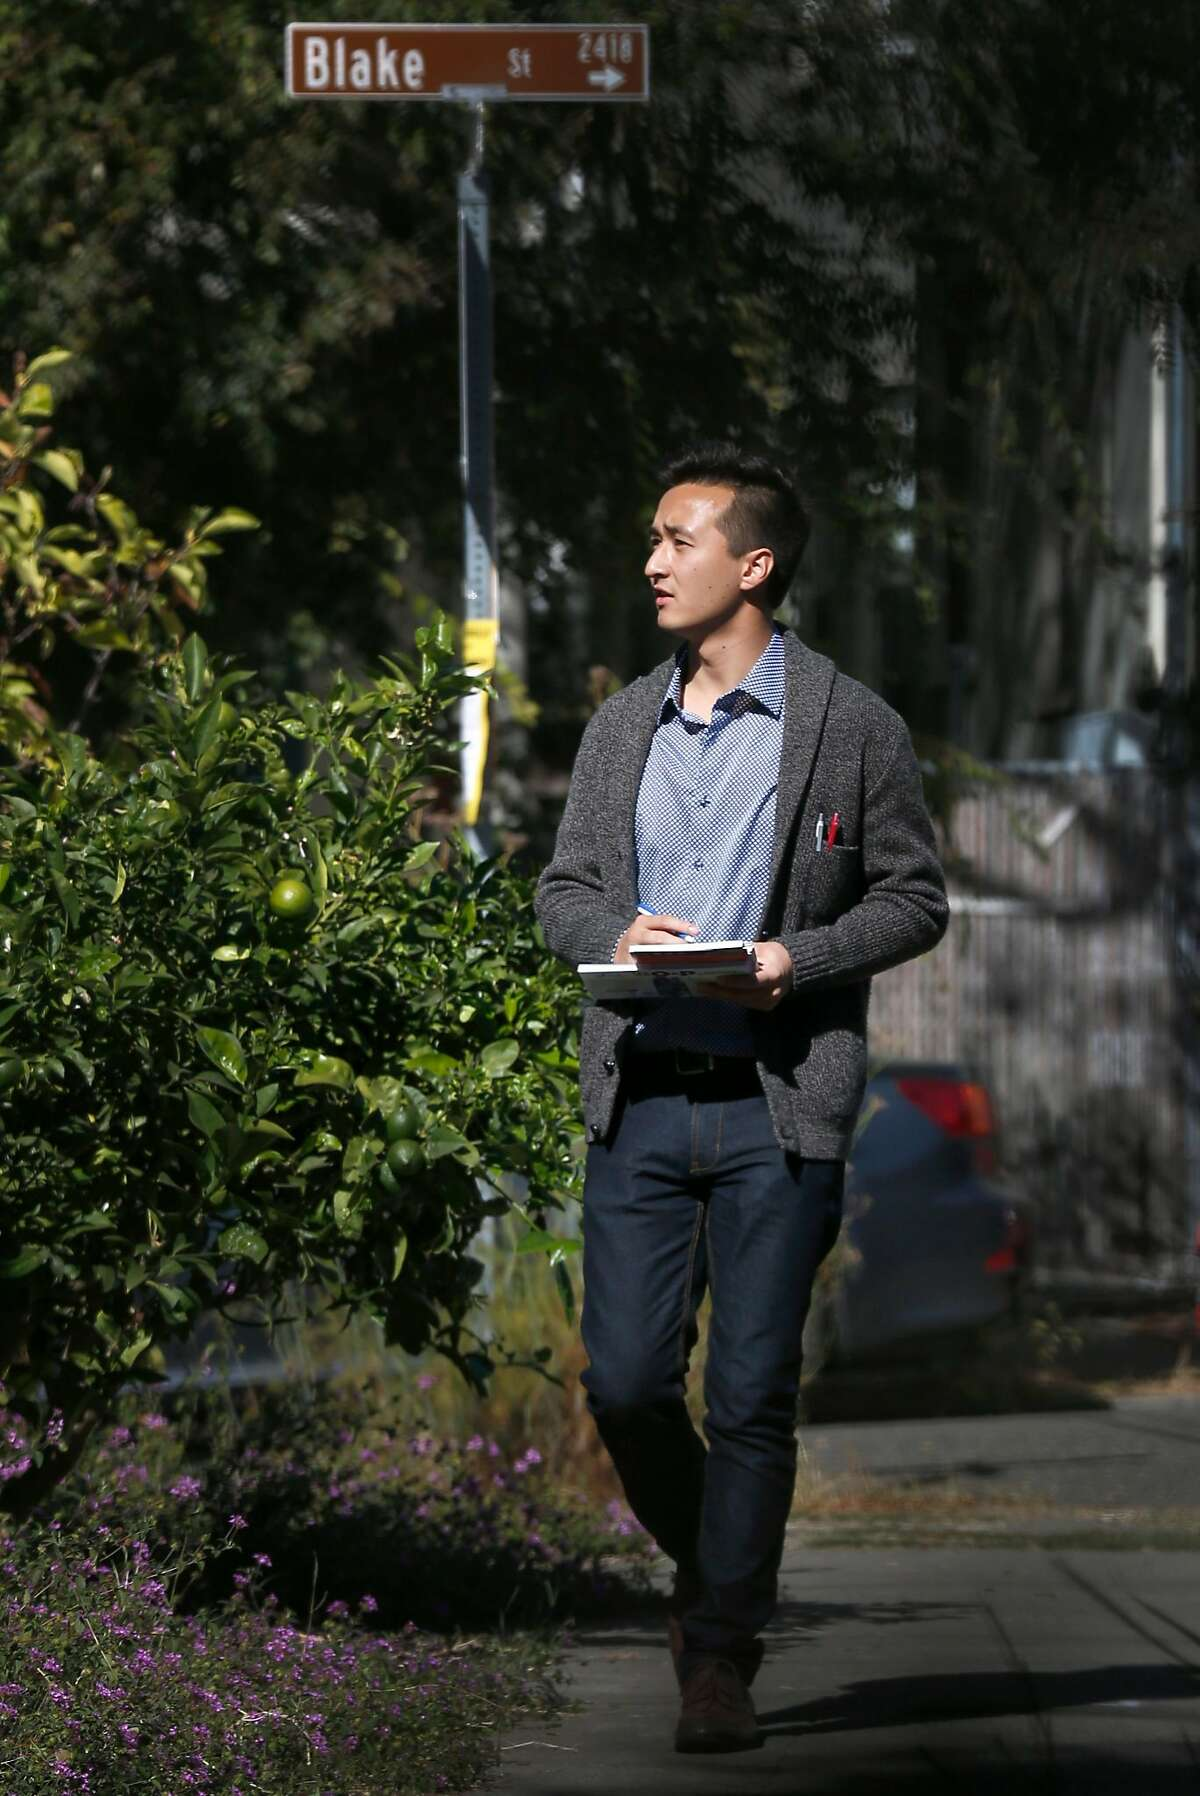 Rigel Robinson, a candidate running for the Berkeley City Council District 7 seat, canvasses a neighborhood in Berkeley, Calif. on Saturday, Oct. 27, 2018.